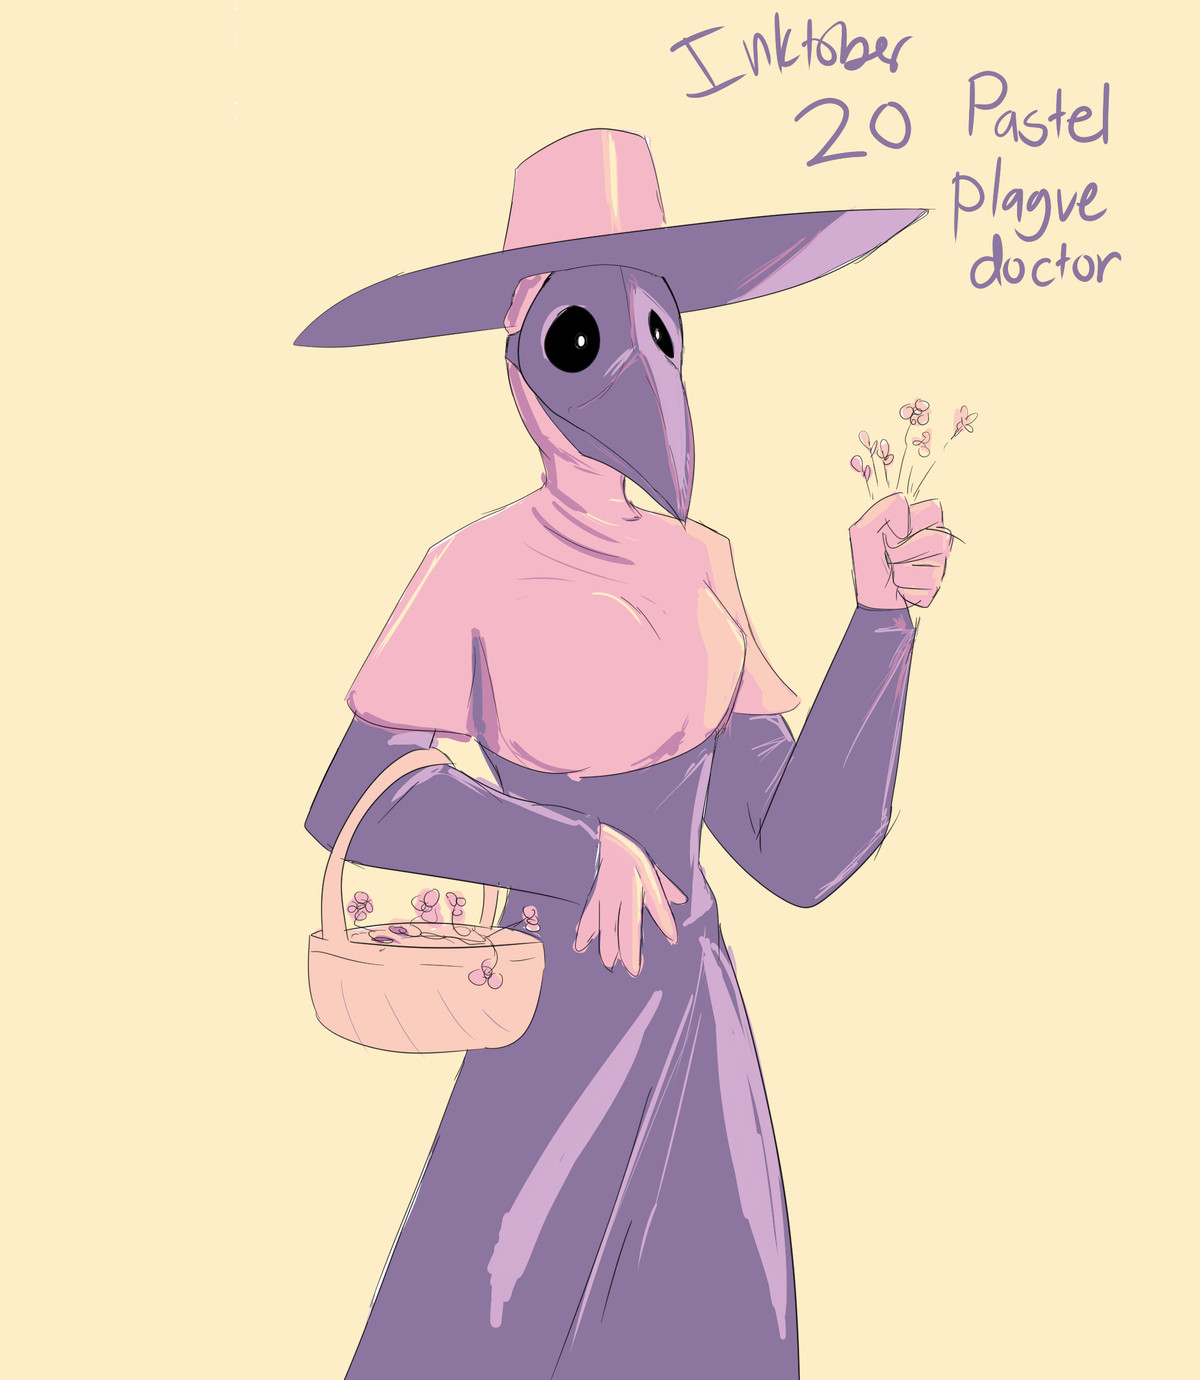 Inktober pastel plague doctor. join list: GBArt (261 subs)Mention History.. Fun Fact, plague doctors often stuffed their masks full of flowers because sick people smell awful, so seeing a plague doctor pick a of flowers would not be str